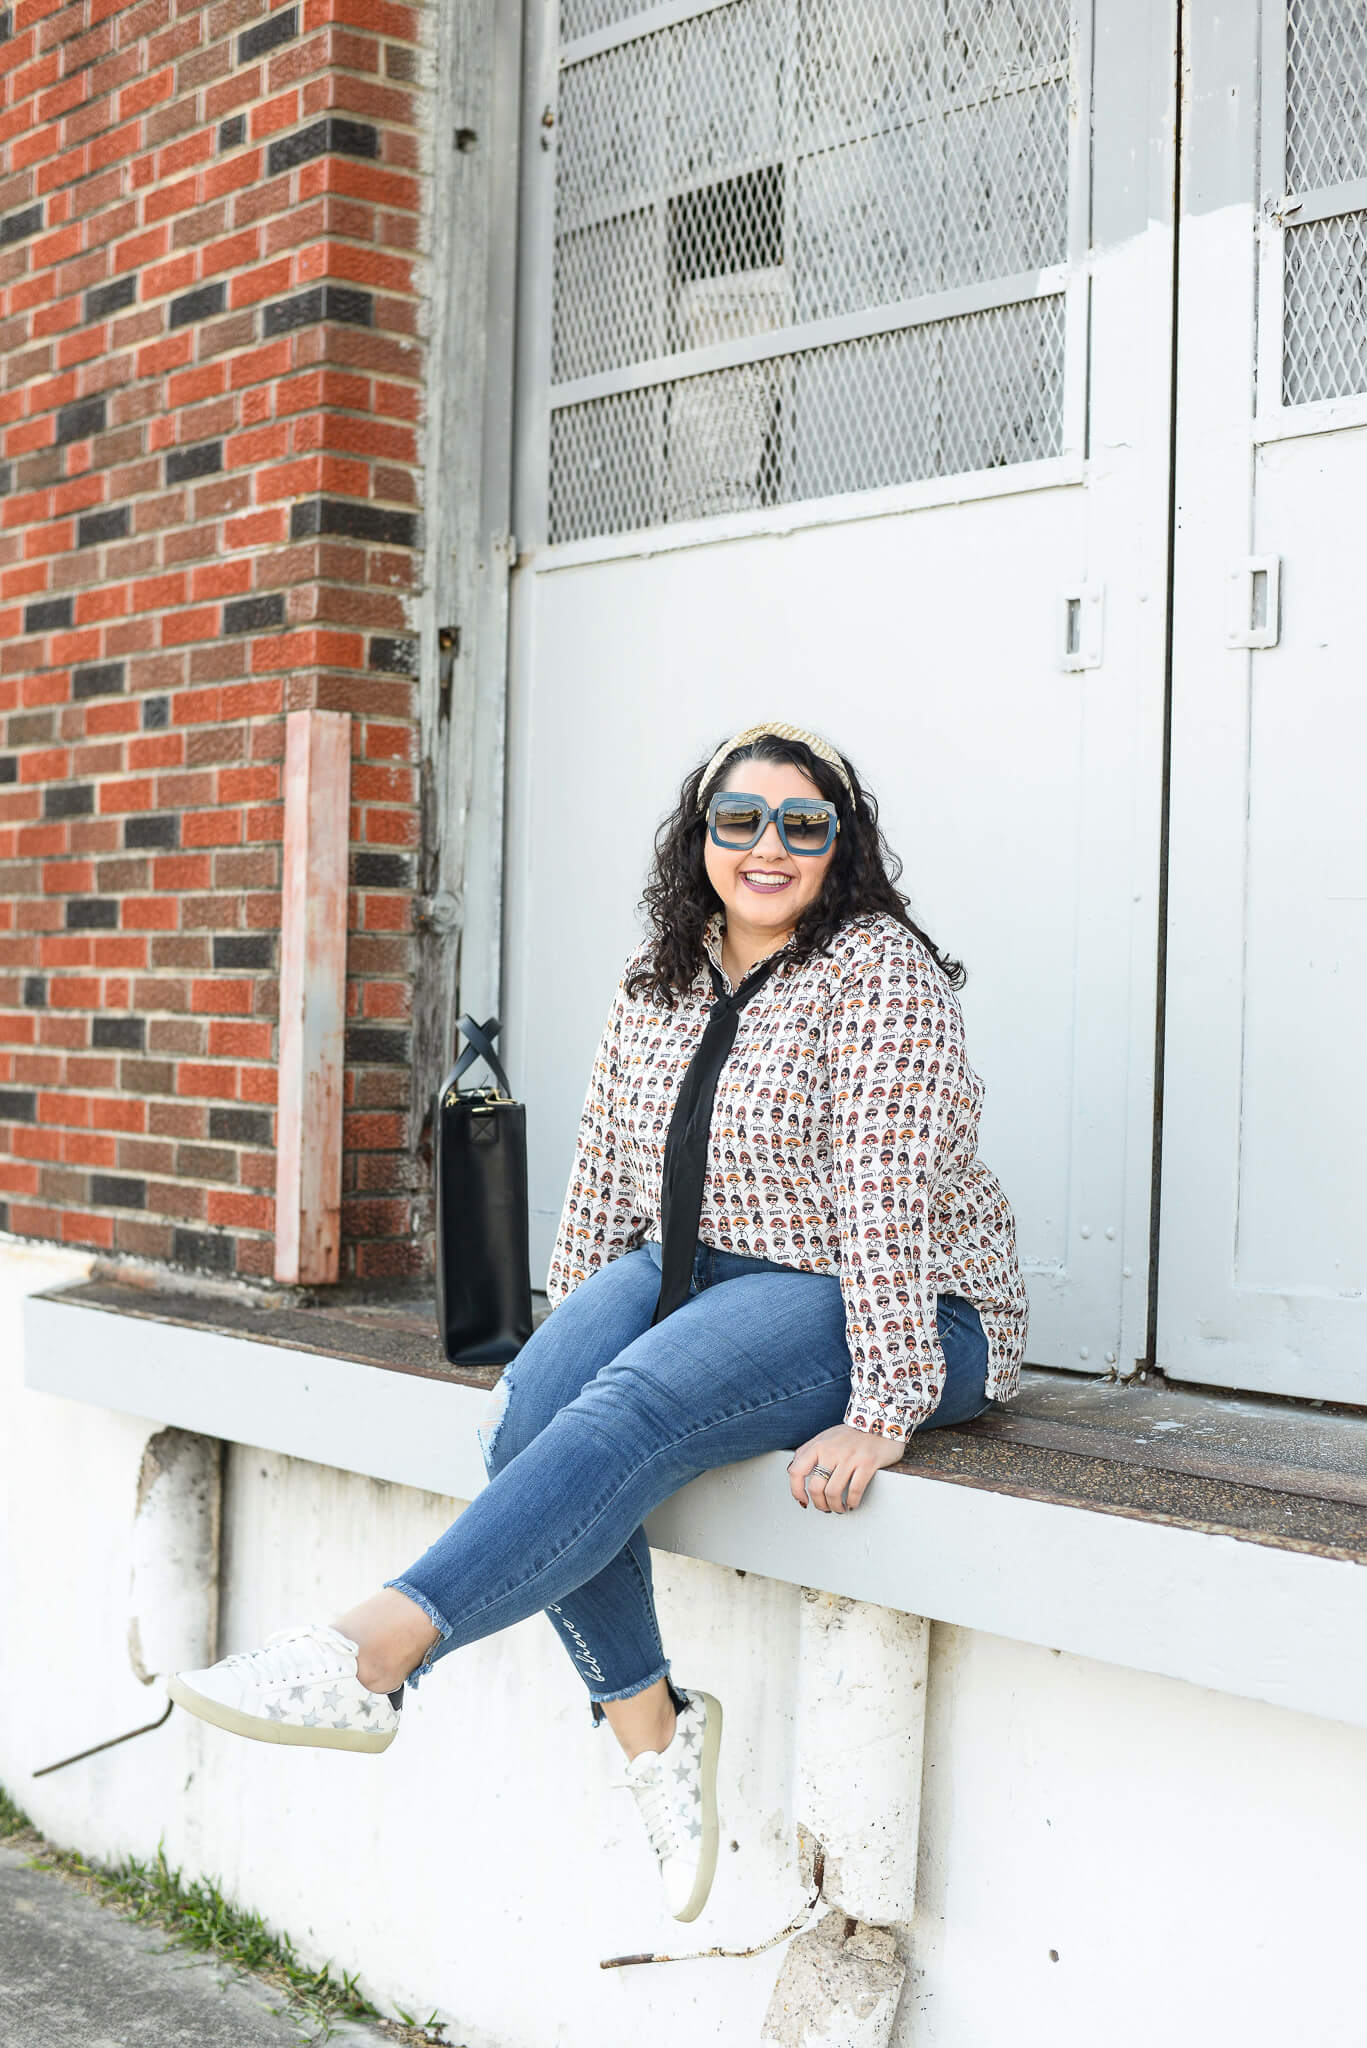 This week, I challenged myself to shop my closet for plus size finds that I already had to make two different outfits from this printed blouse